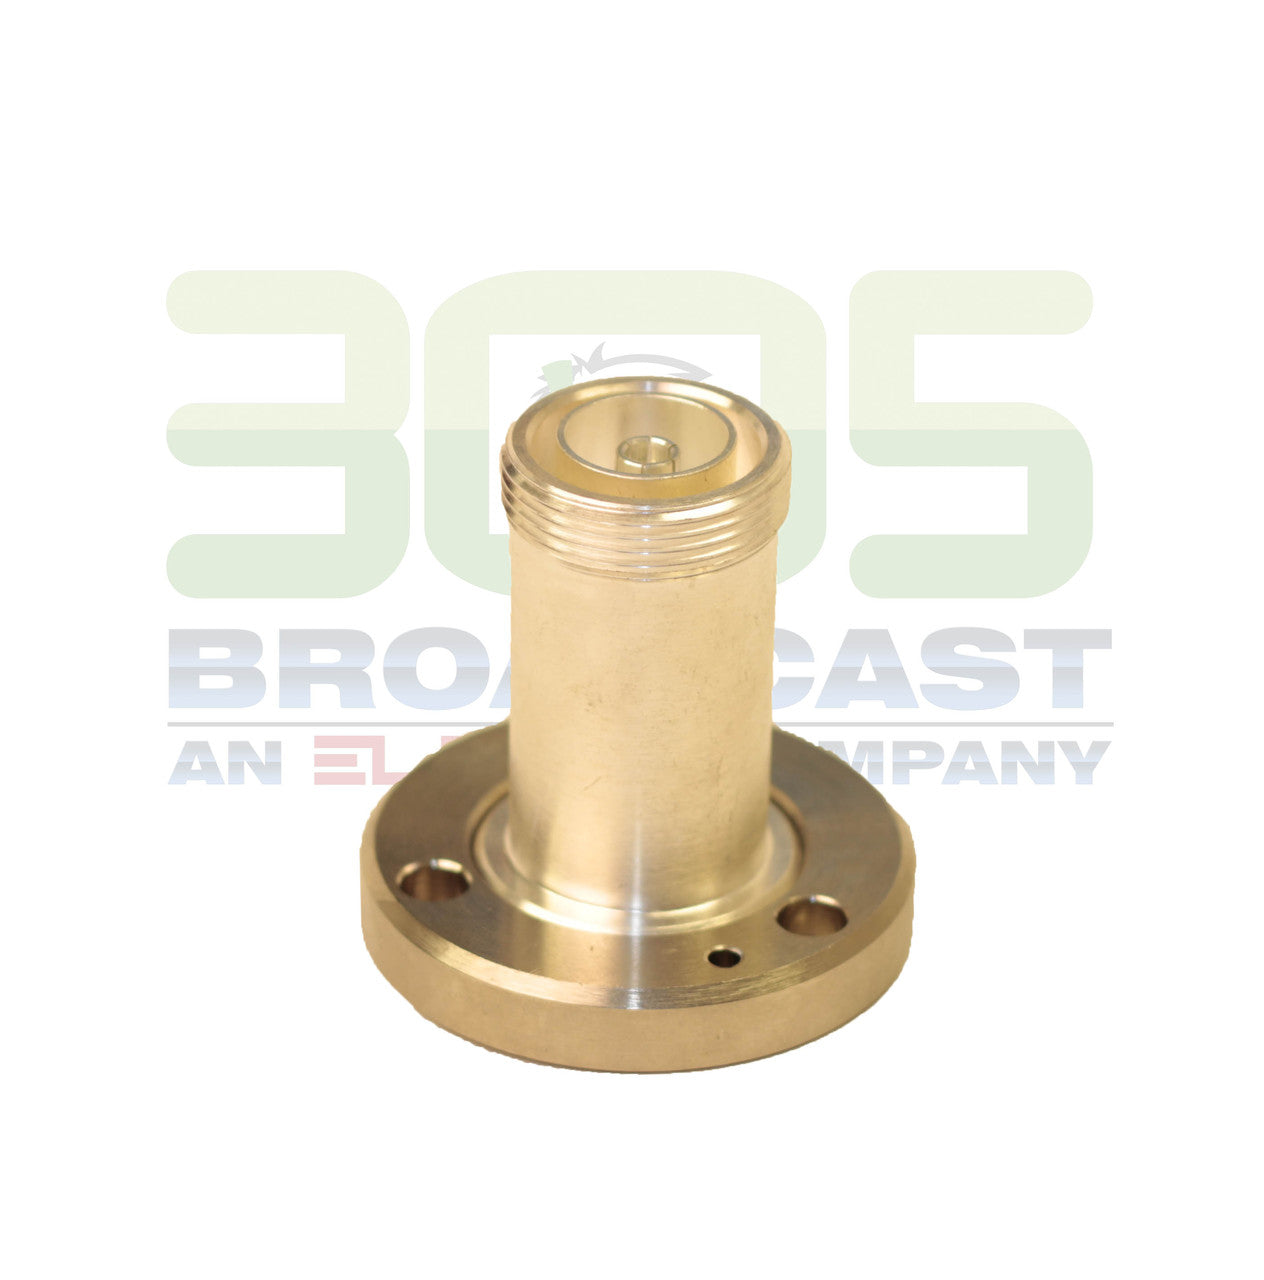 "Adapter, 7/8"" EIA to 7/16 DIN Female - 305broadcast"